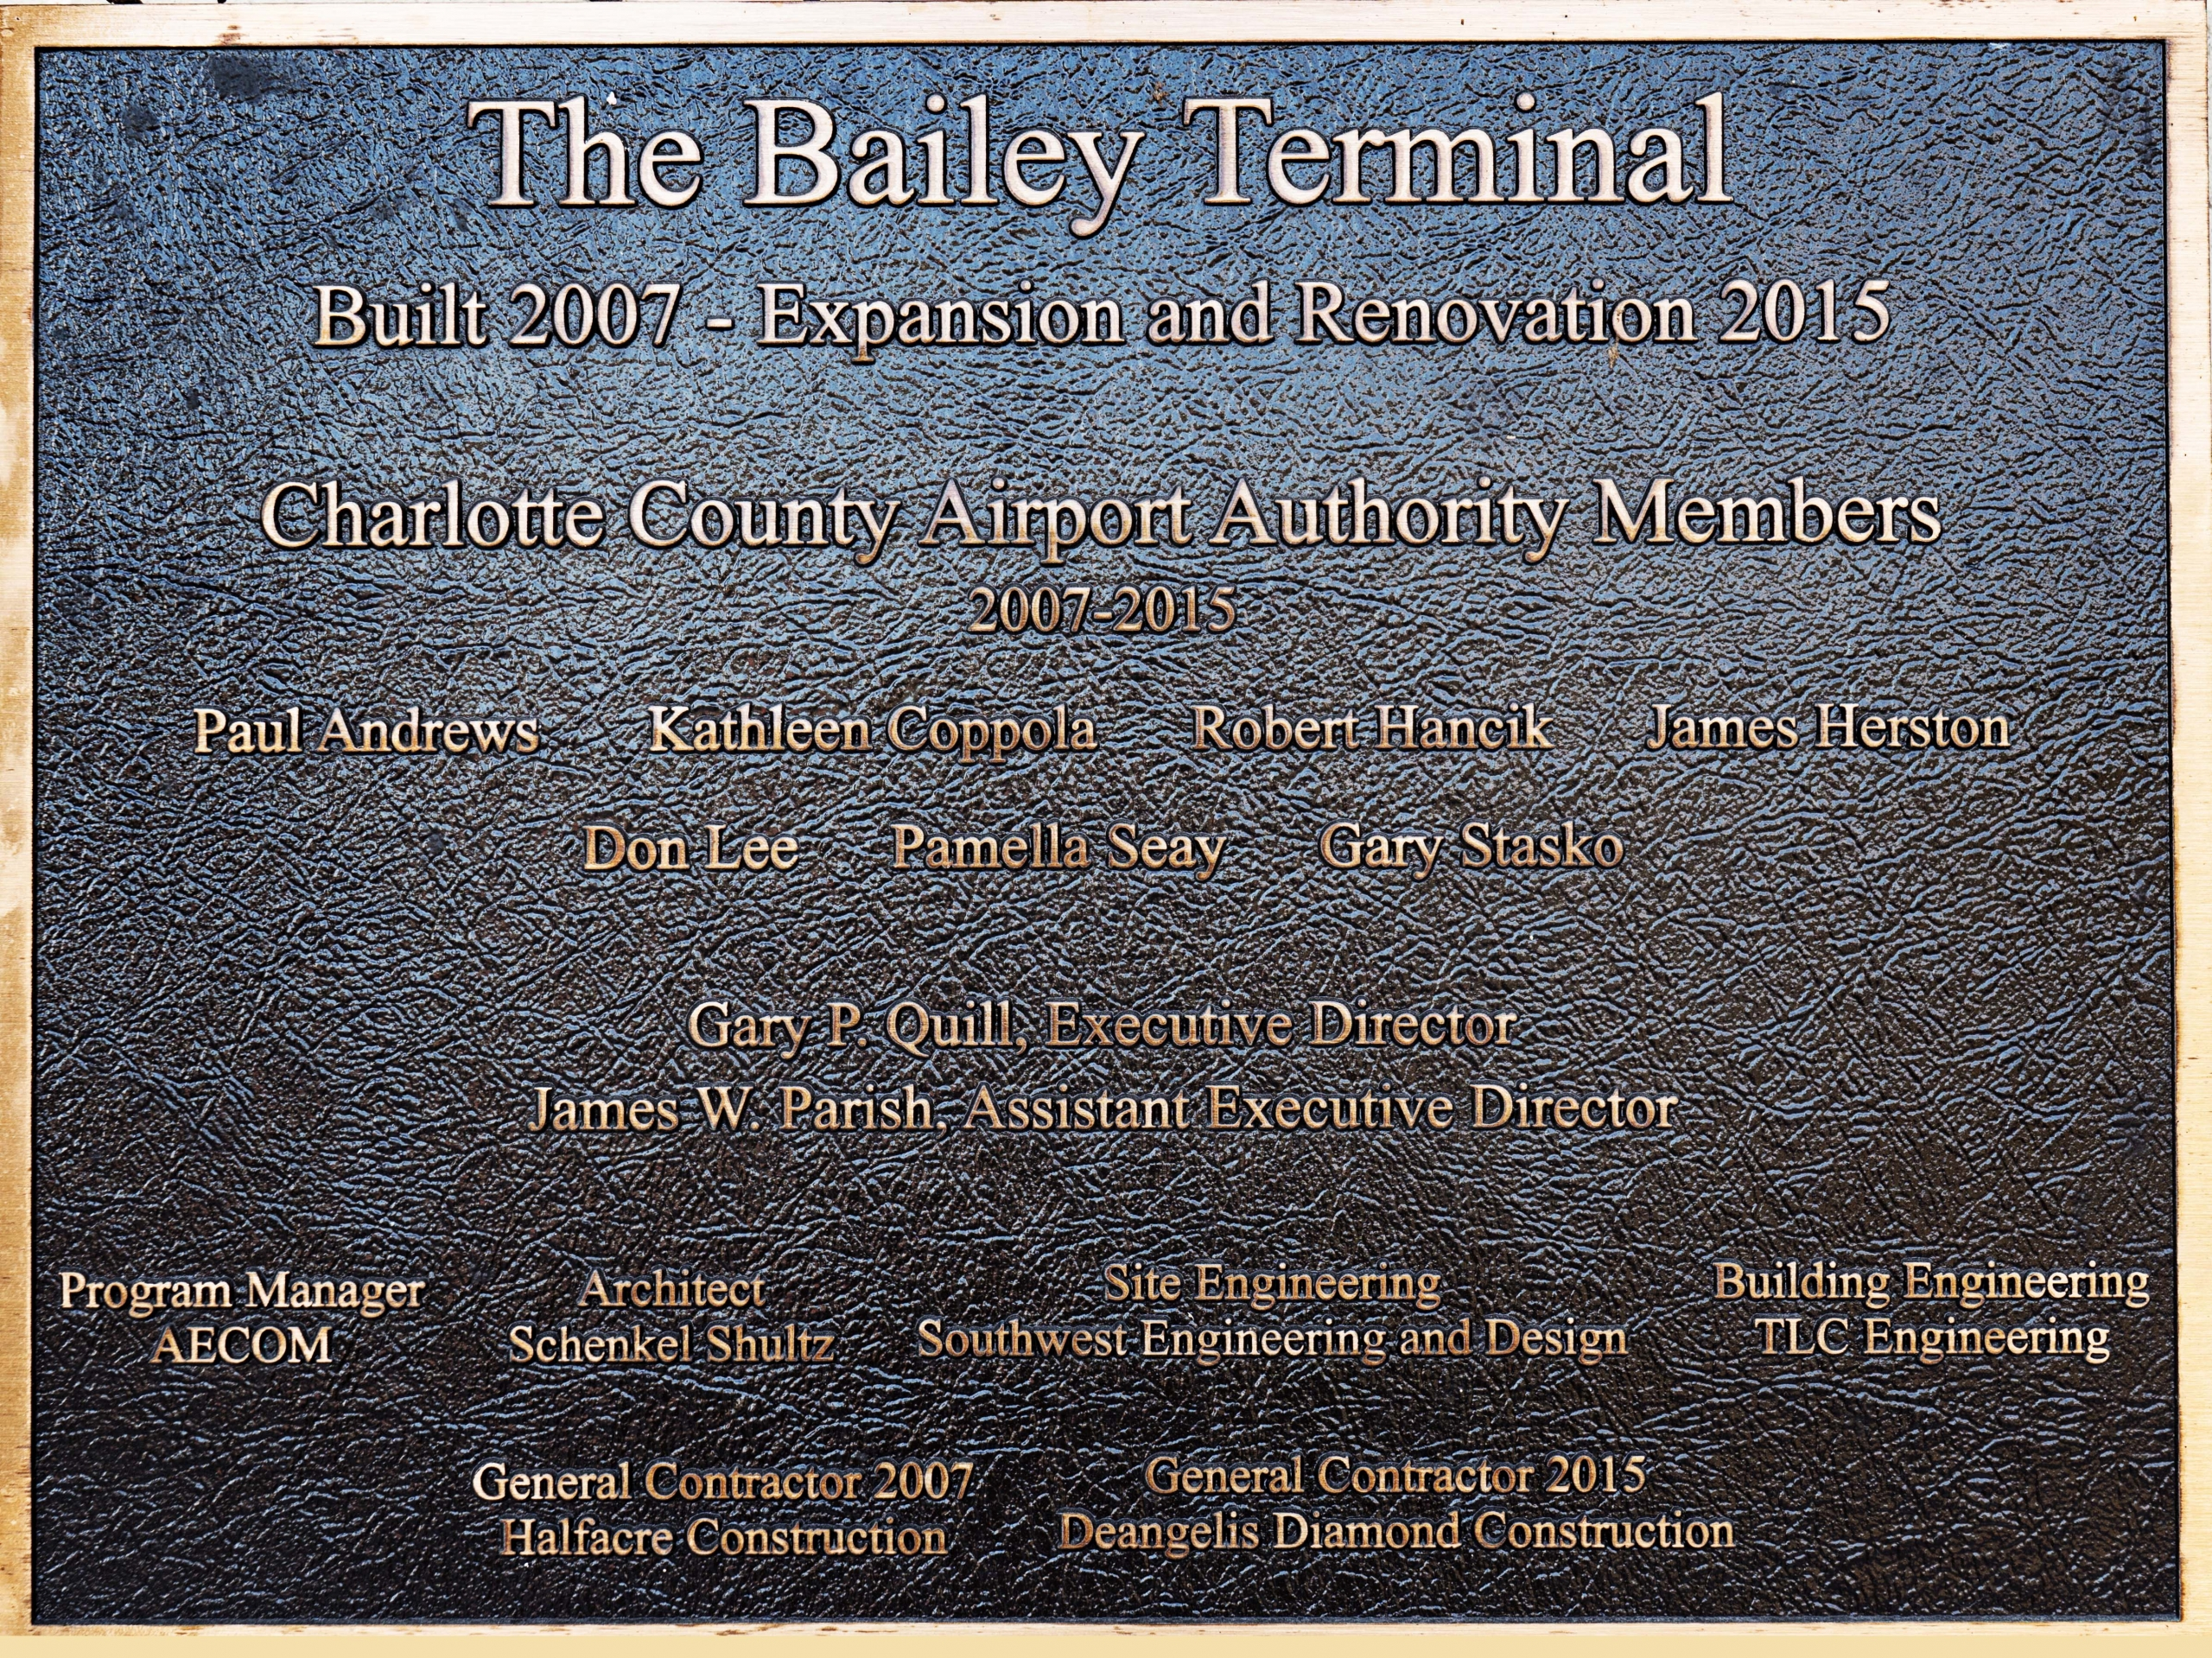 The Bailey Terminal, named after the Bailey brothers who were all from Punta Gorda and served in the military during WWII and the Korean wars, was expanded in 2016 to accommodate the growing number of passengers traveling in and out of the airport.